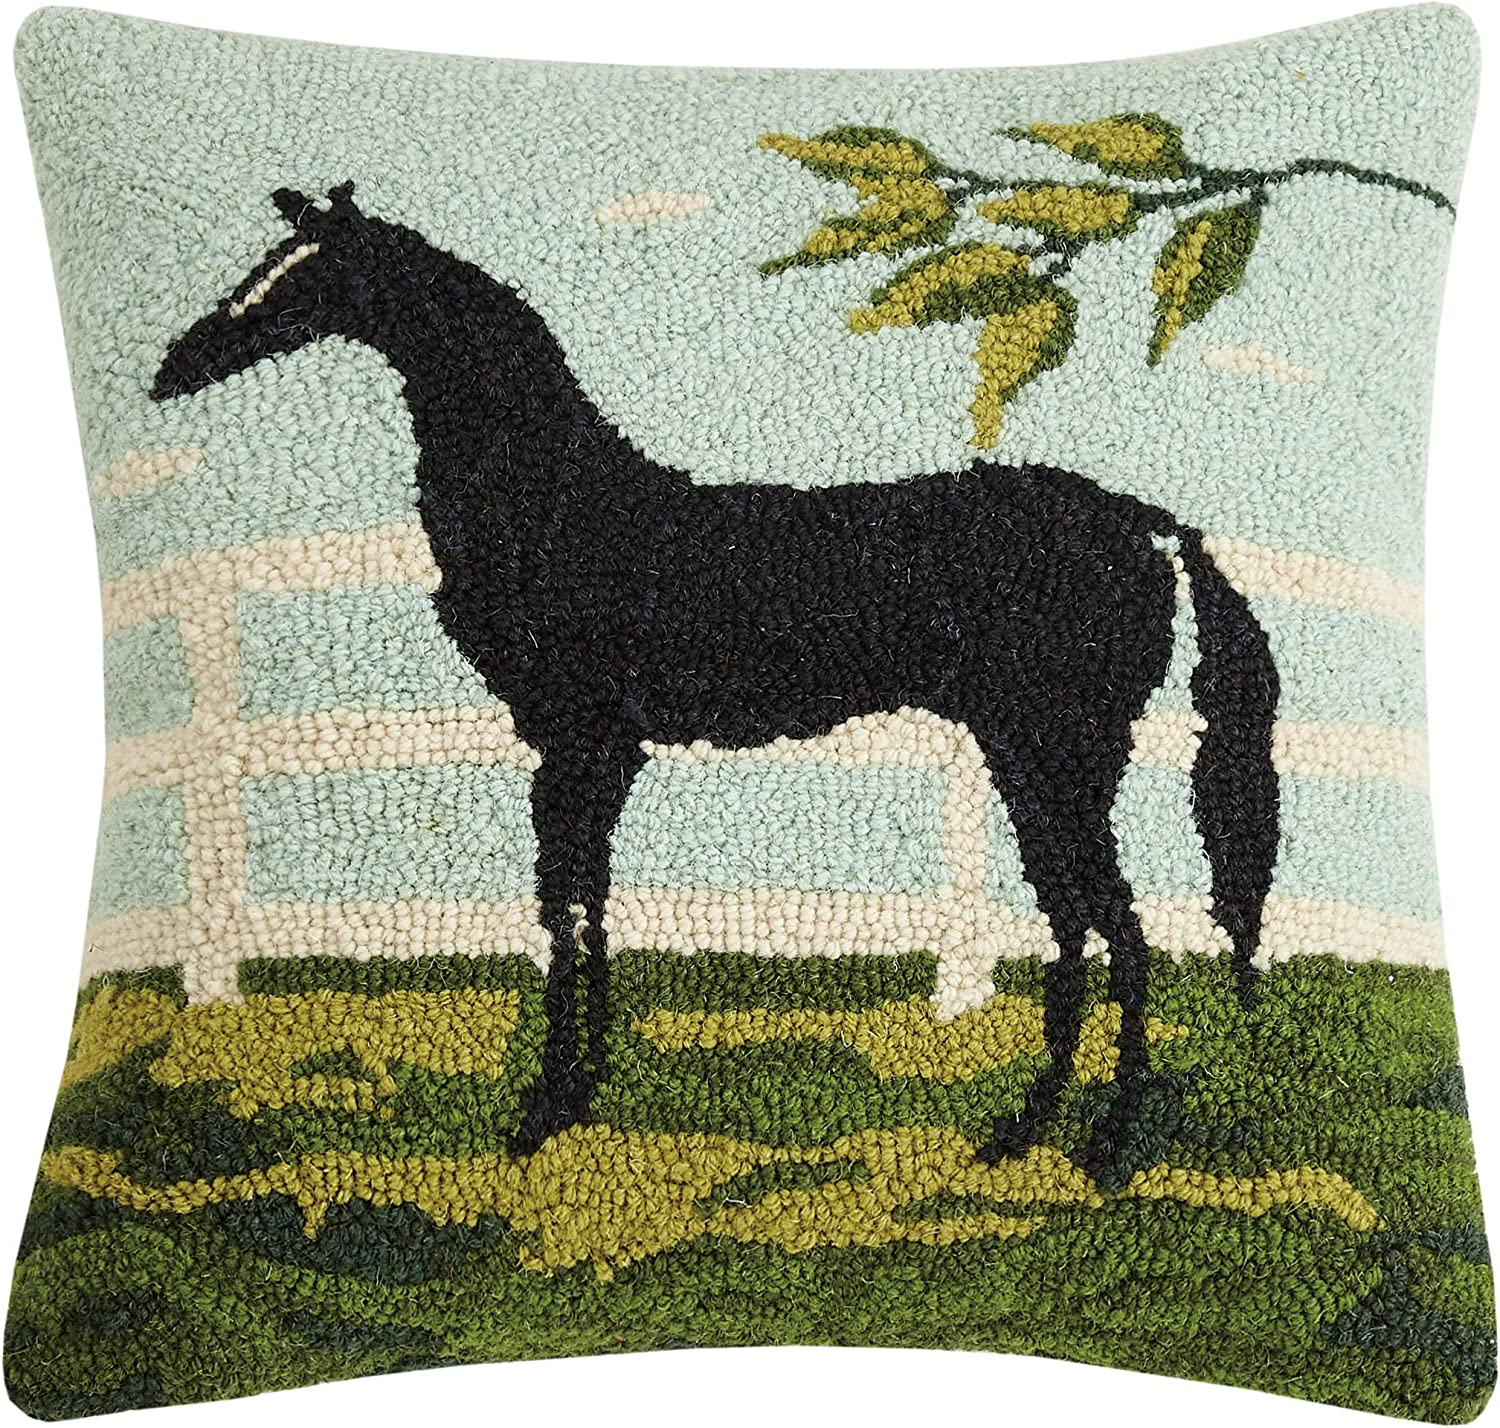 Amazon Com Peking Handicraft 30wk93c16sq Black Horse Hook Pillow 100 Wool And Cotton Home Kitchen